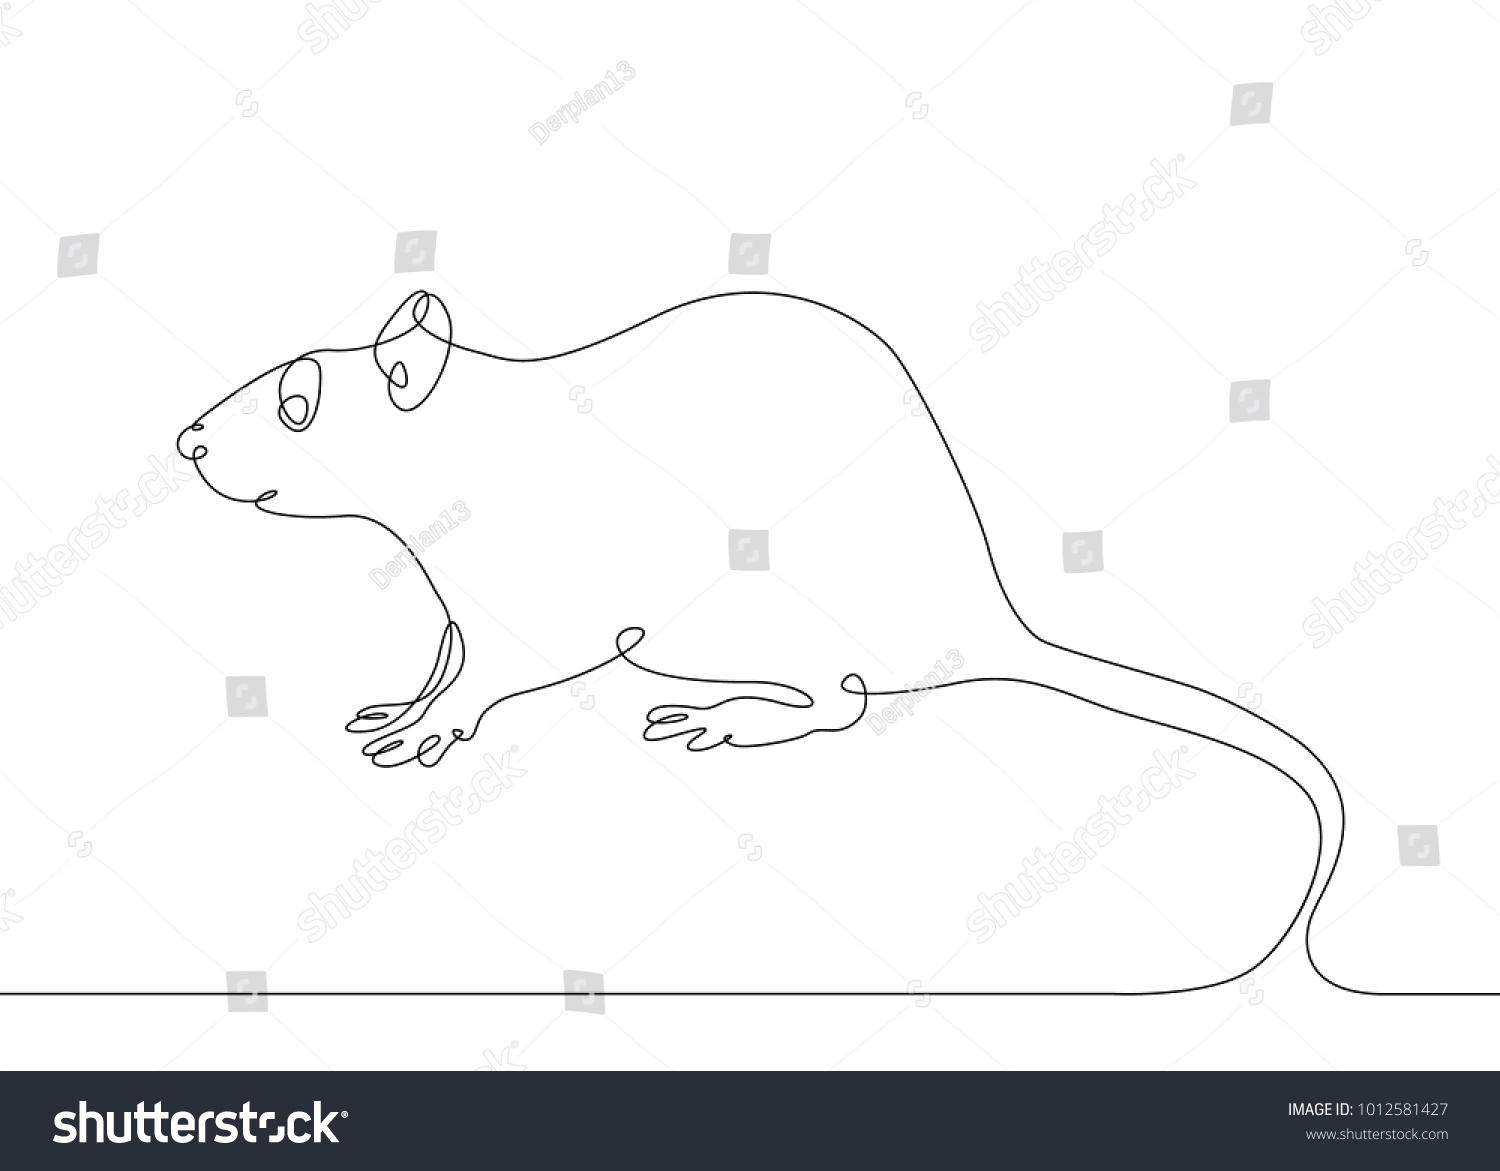 Line Drawing Rat : Continuous one line drawing rat mouse stock photo vector